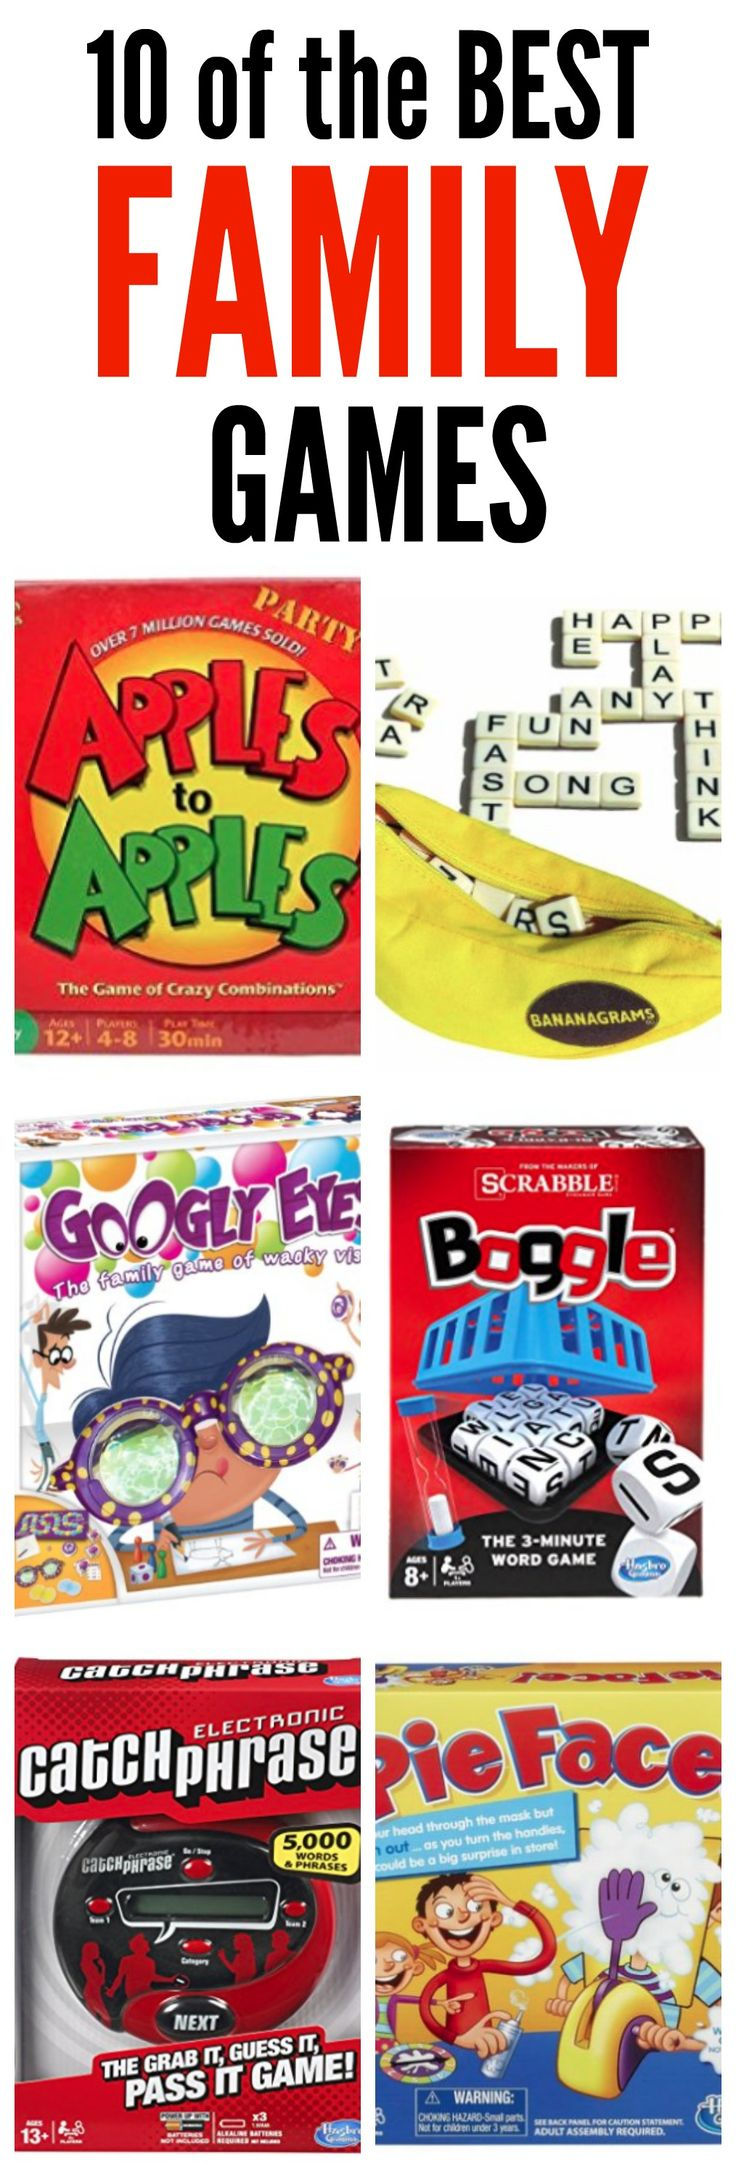 10 of the Best Family Games for Family Game Night!